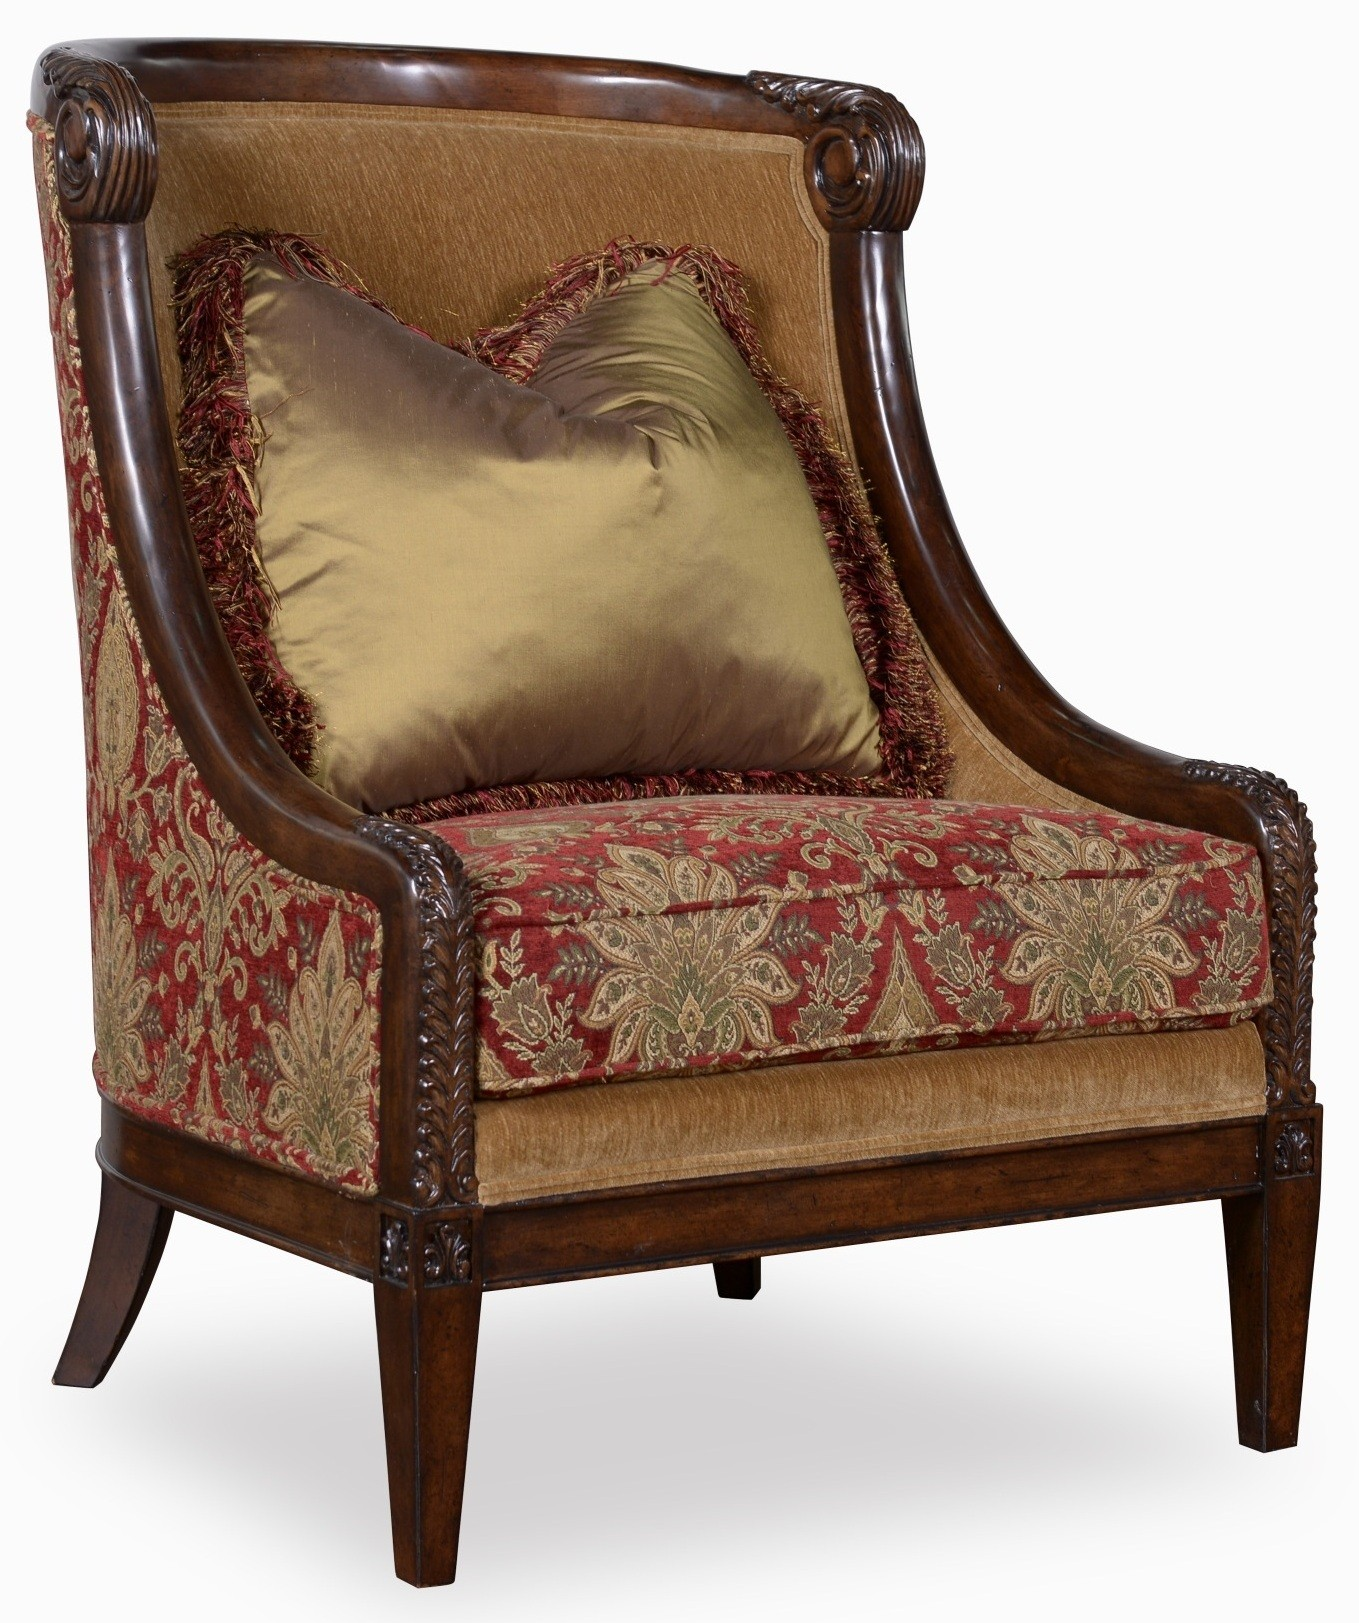 Wood Accent Chair Giovanna Caramel Carved Wood Accent Chair From Art 509534